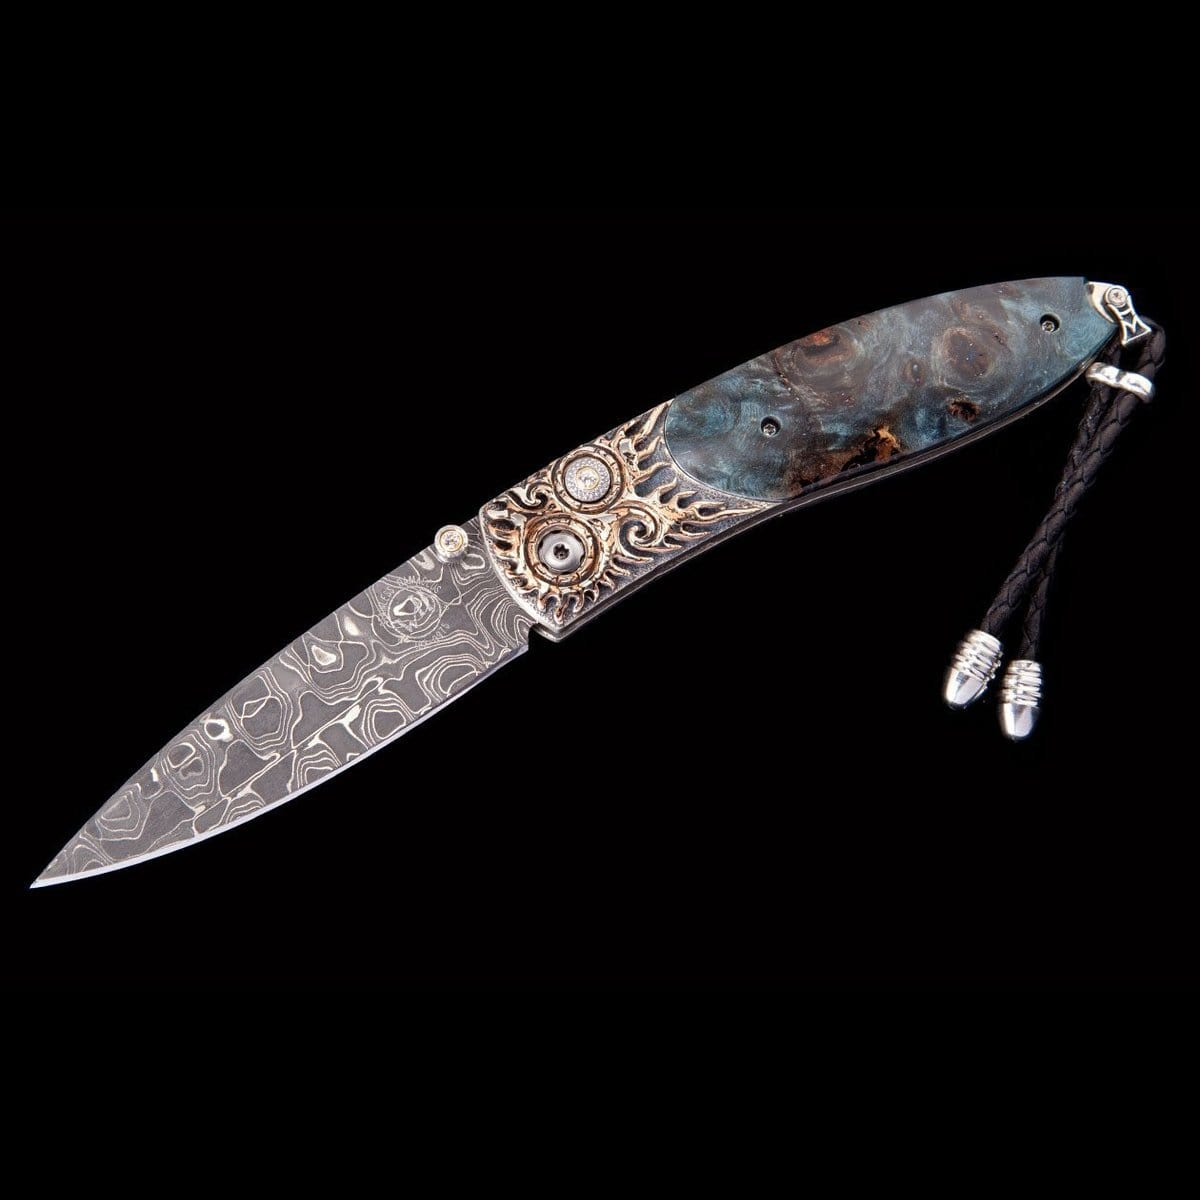 Monarch Blue Flame Limited Edition Knife - B05 BLUE FLAME - William Henry